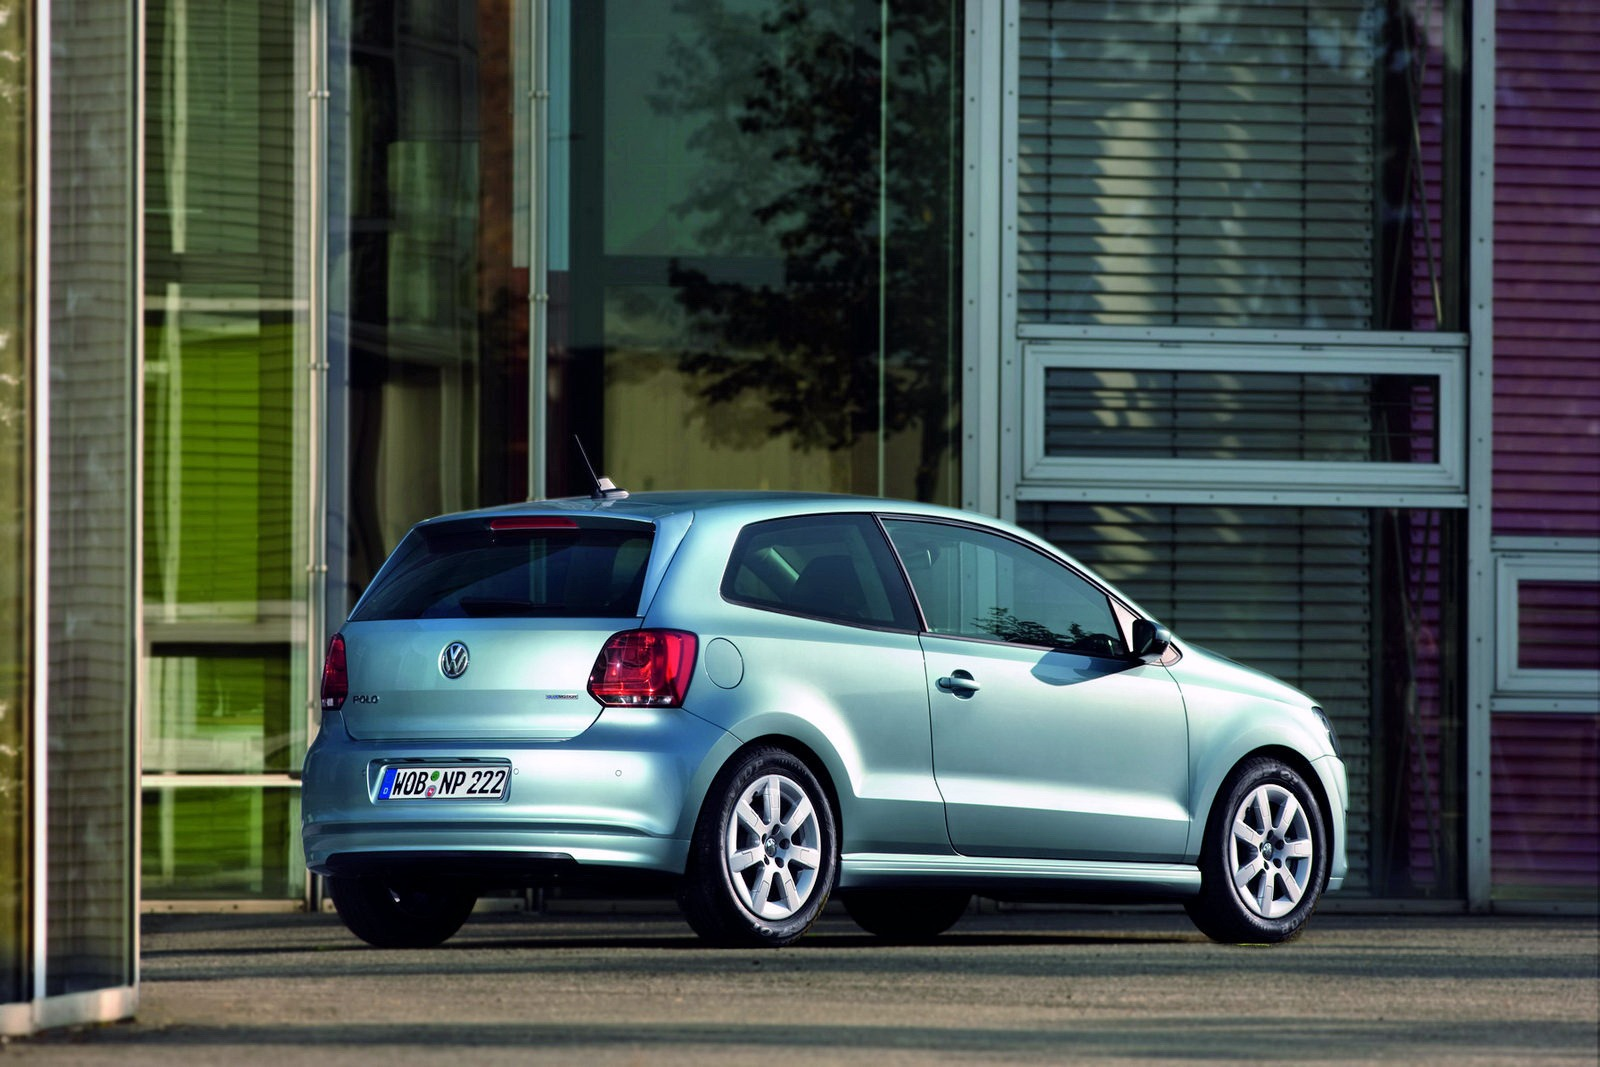 u s to get volkswagen polo volkswagen utah. Black Bedroom Furniture Sets. Home Design Ideas